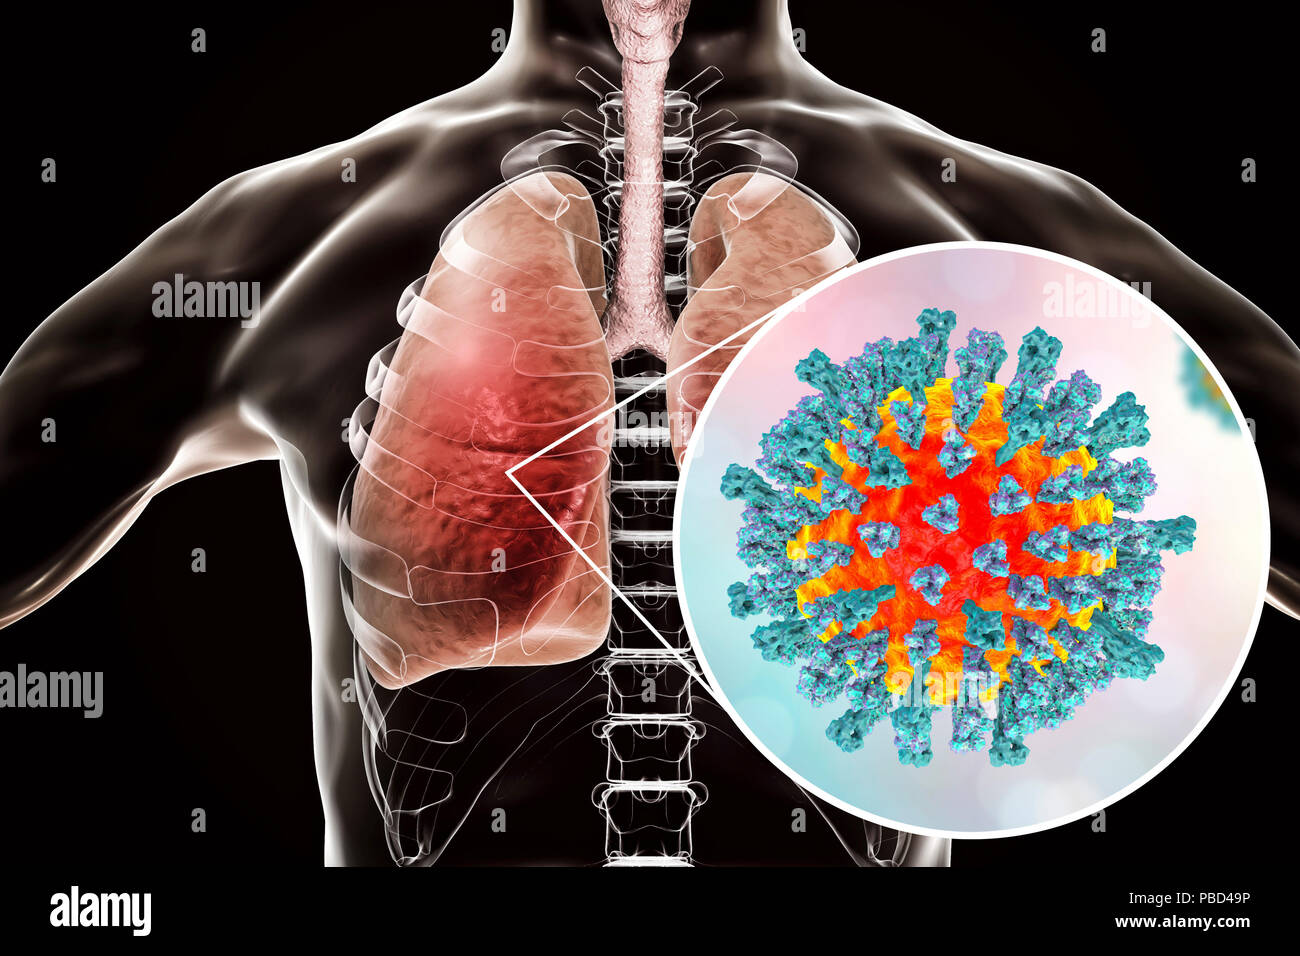 Pneumonia caused by measles viruses, conceptual computer illustration. Measles virus, from the Morbillivirus group of viruses, consists of an RNA (ribonucleic acid) core surrounded by an envelope studded with surface proteins haemagglutinin-neuraminidase and fusion protein, which are used to attach to and penetrate a host cell. Measles is a highly infectious itchy rash with a fever. It mainly affects children, but one attack usually gives life-long immunity. Pneumonia is one of common complications of measles. - Stock Image